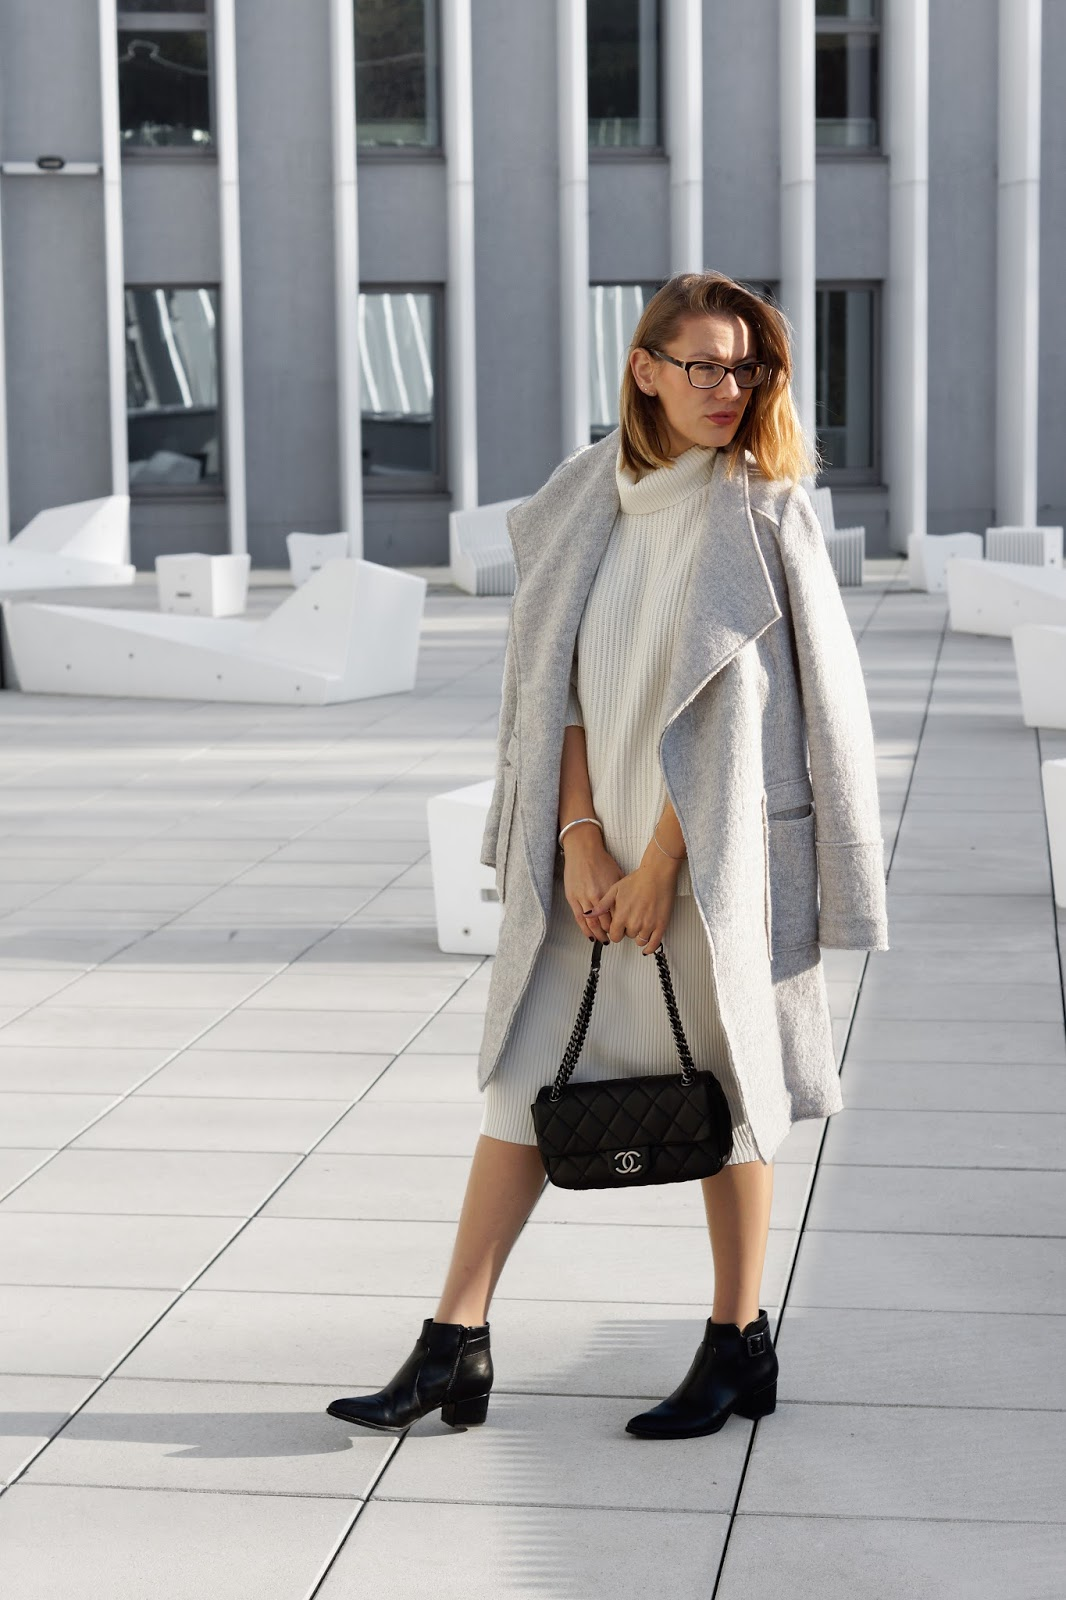 WHITE SKIRTS AND GREY COATS